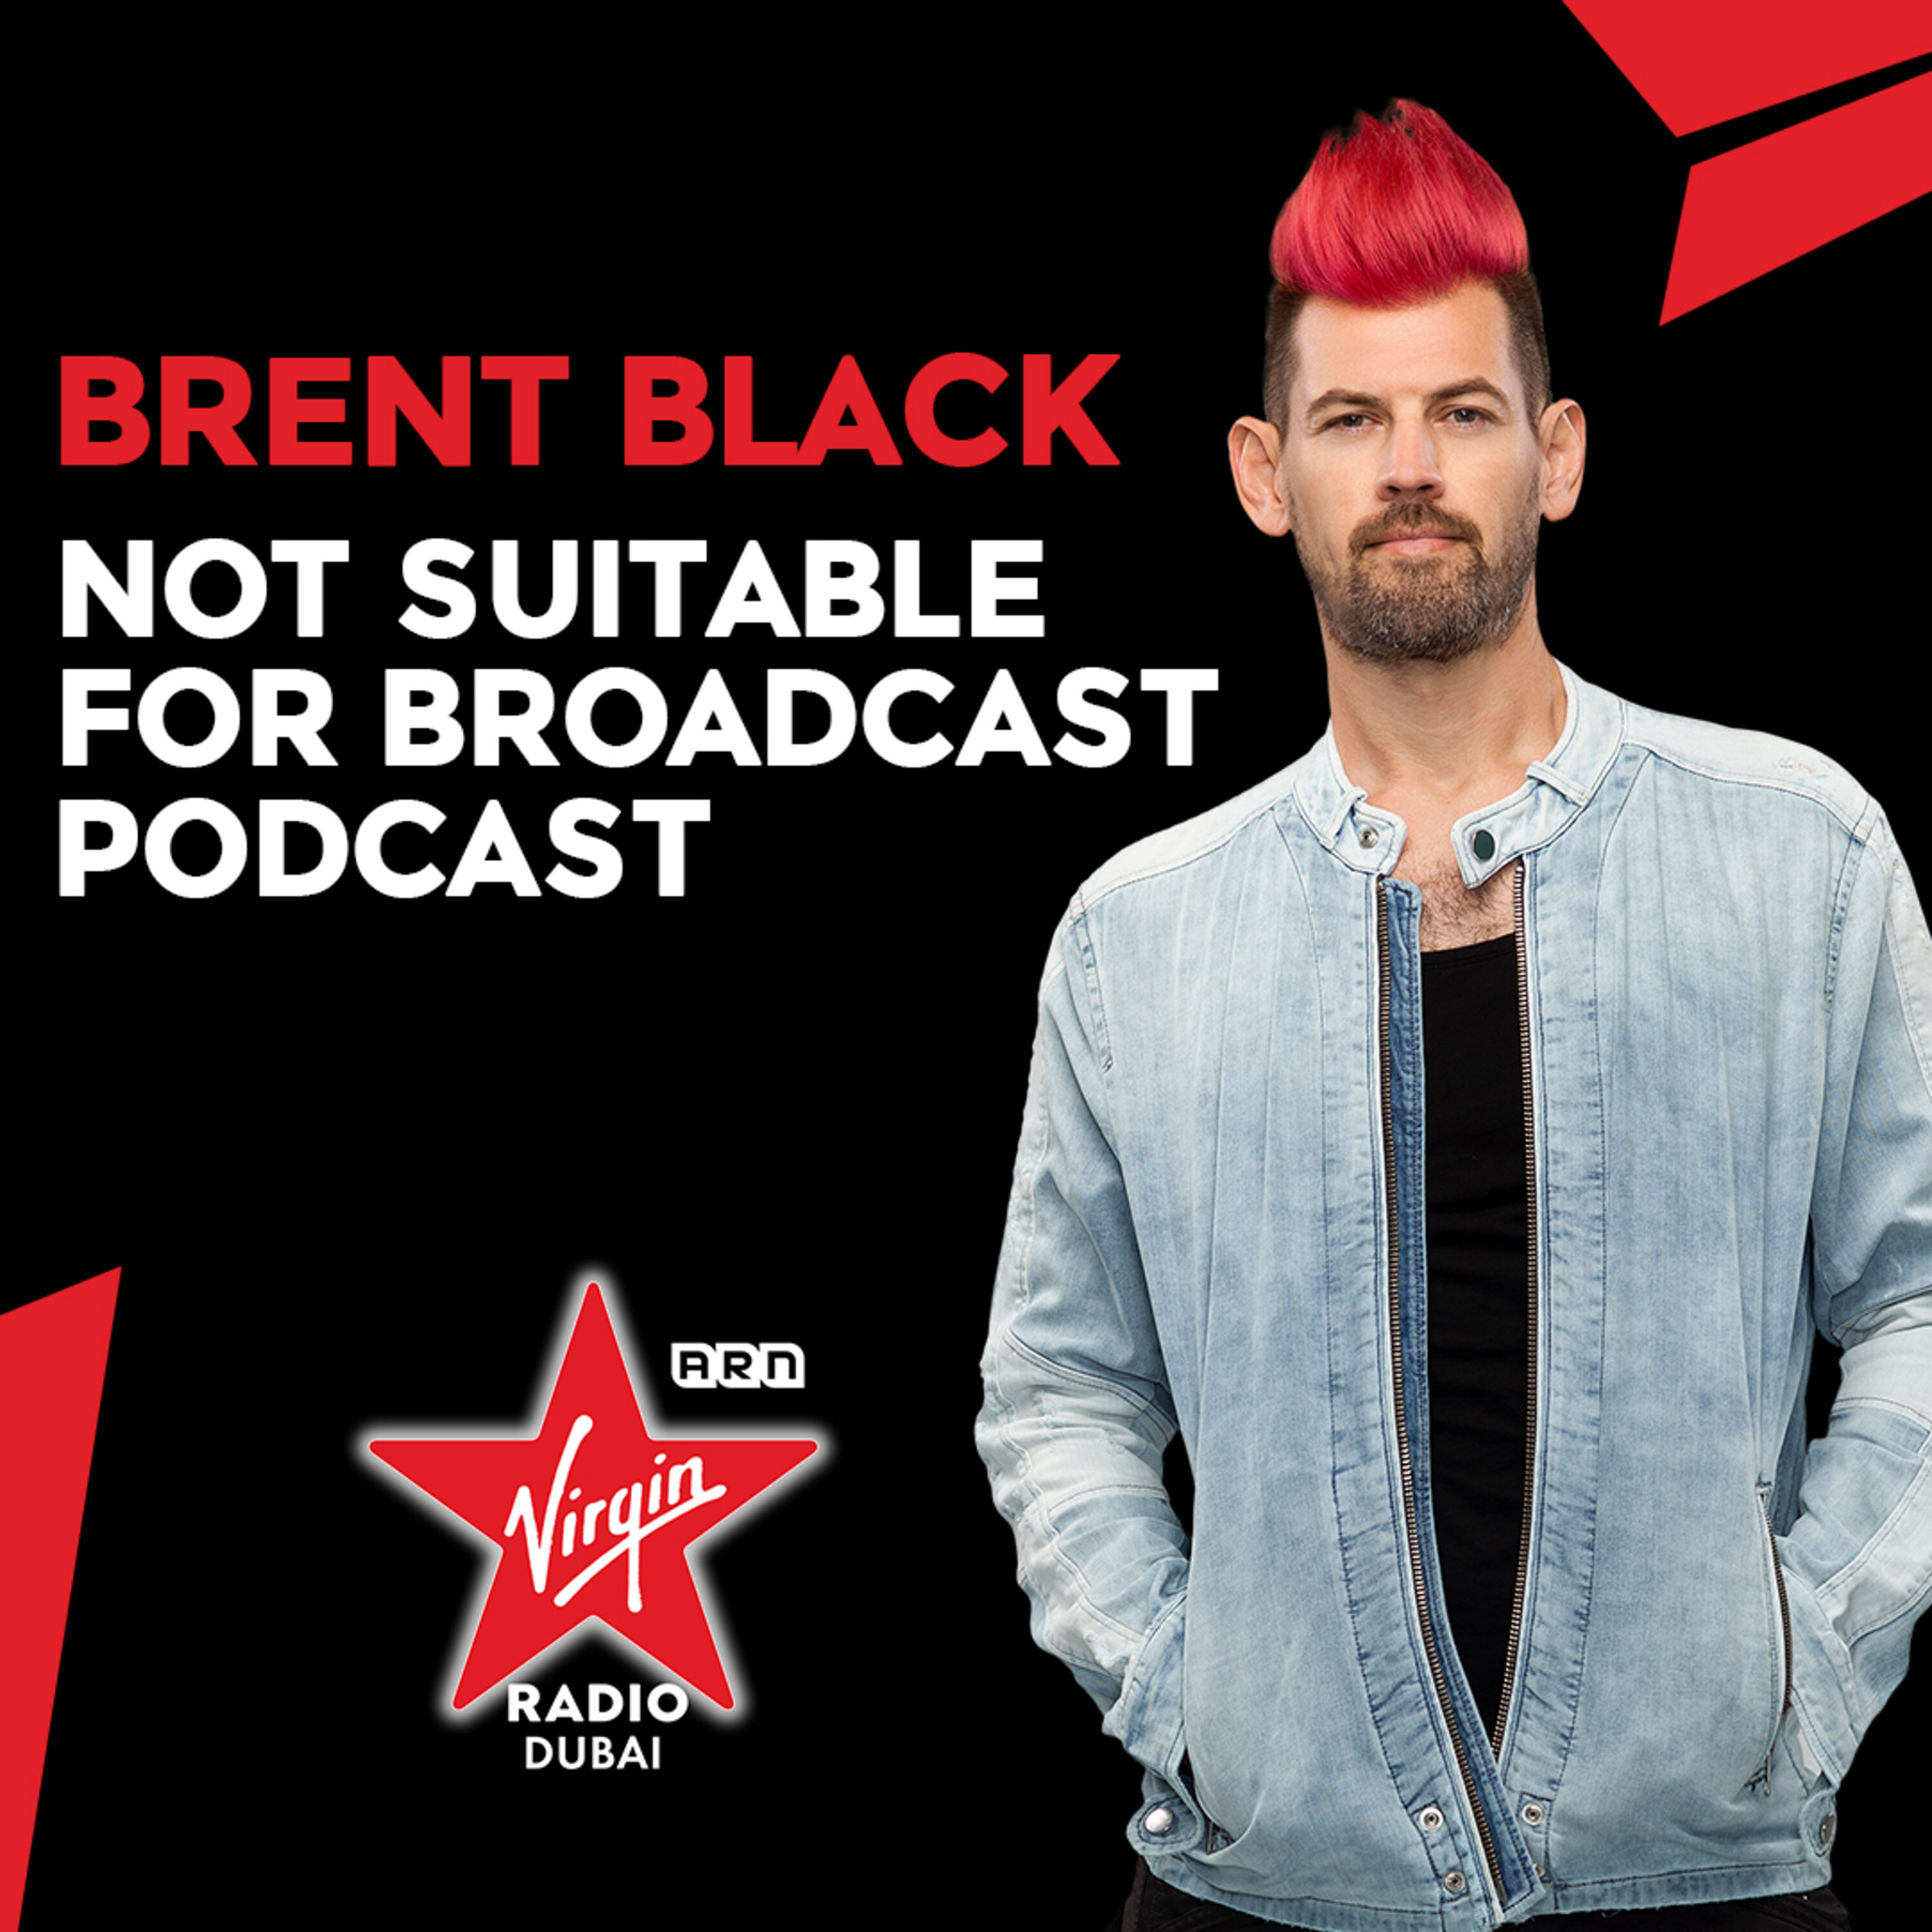 Brent Black's Not Suitable For Broadcast